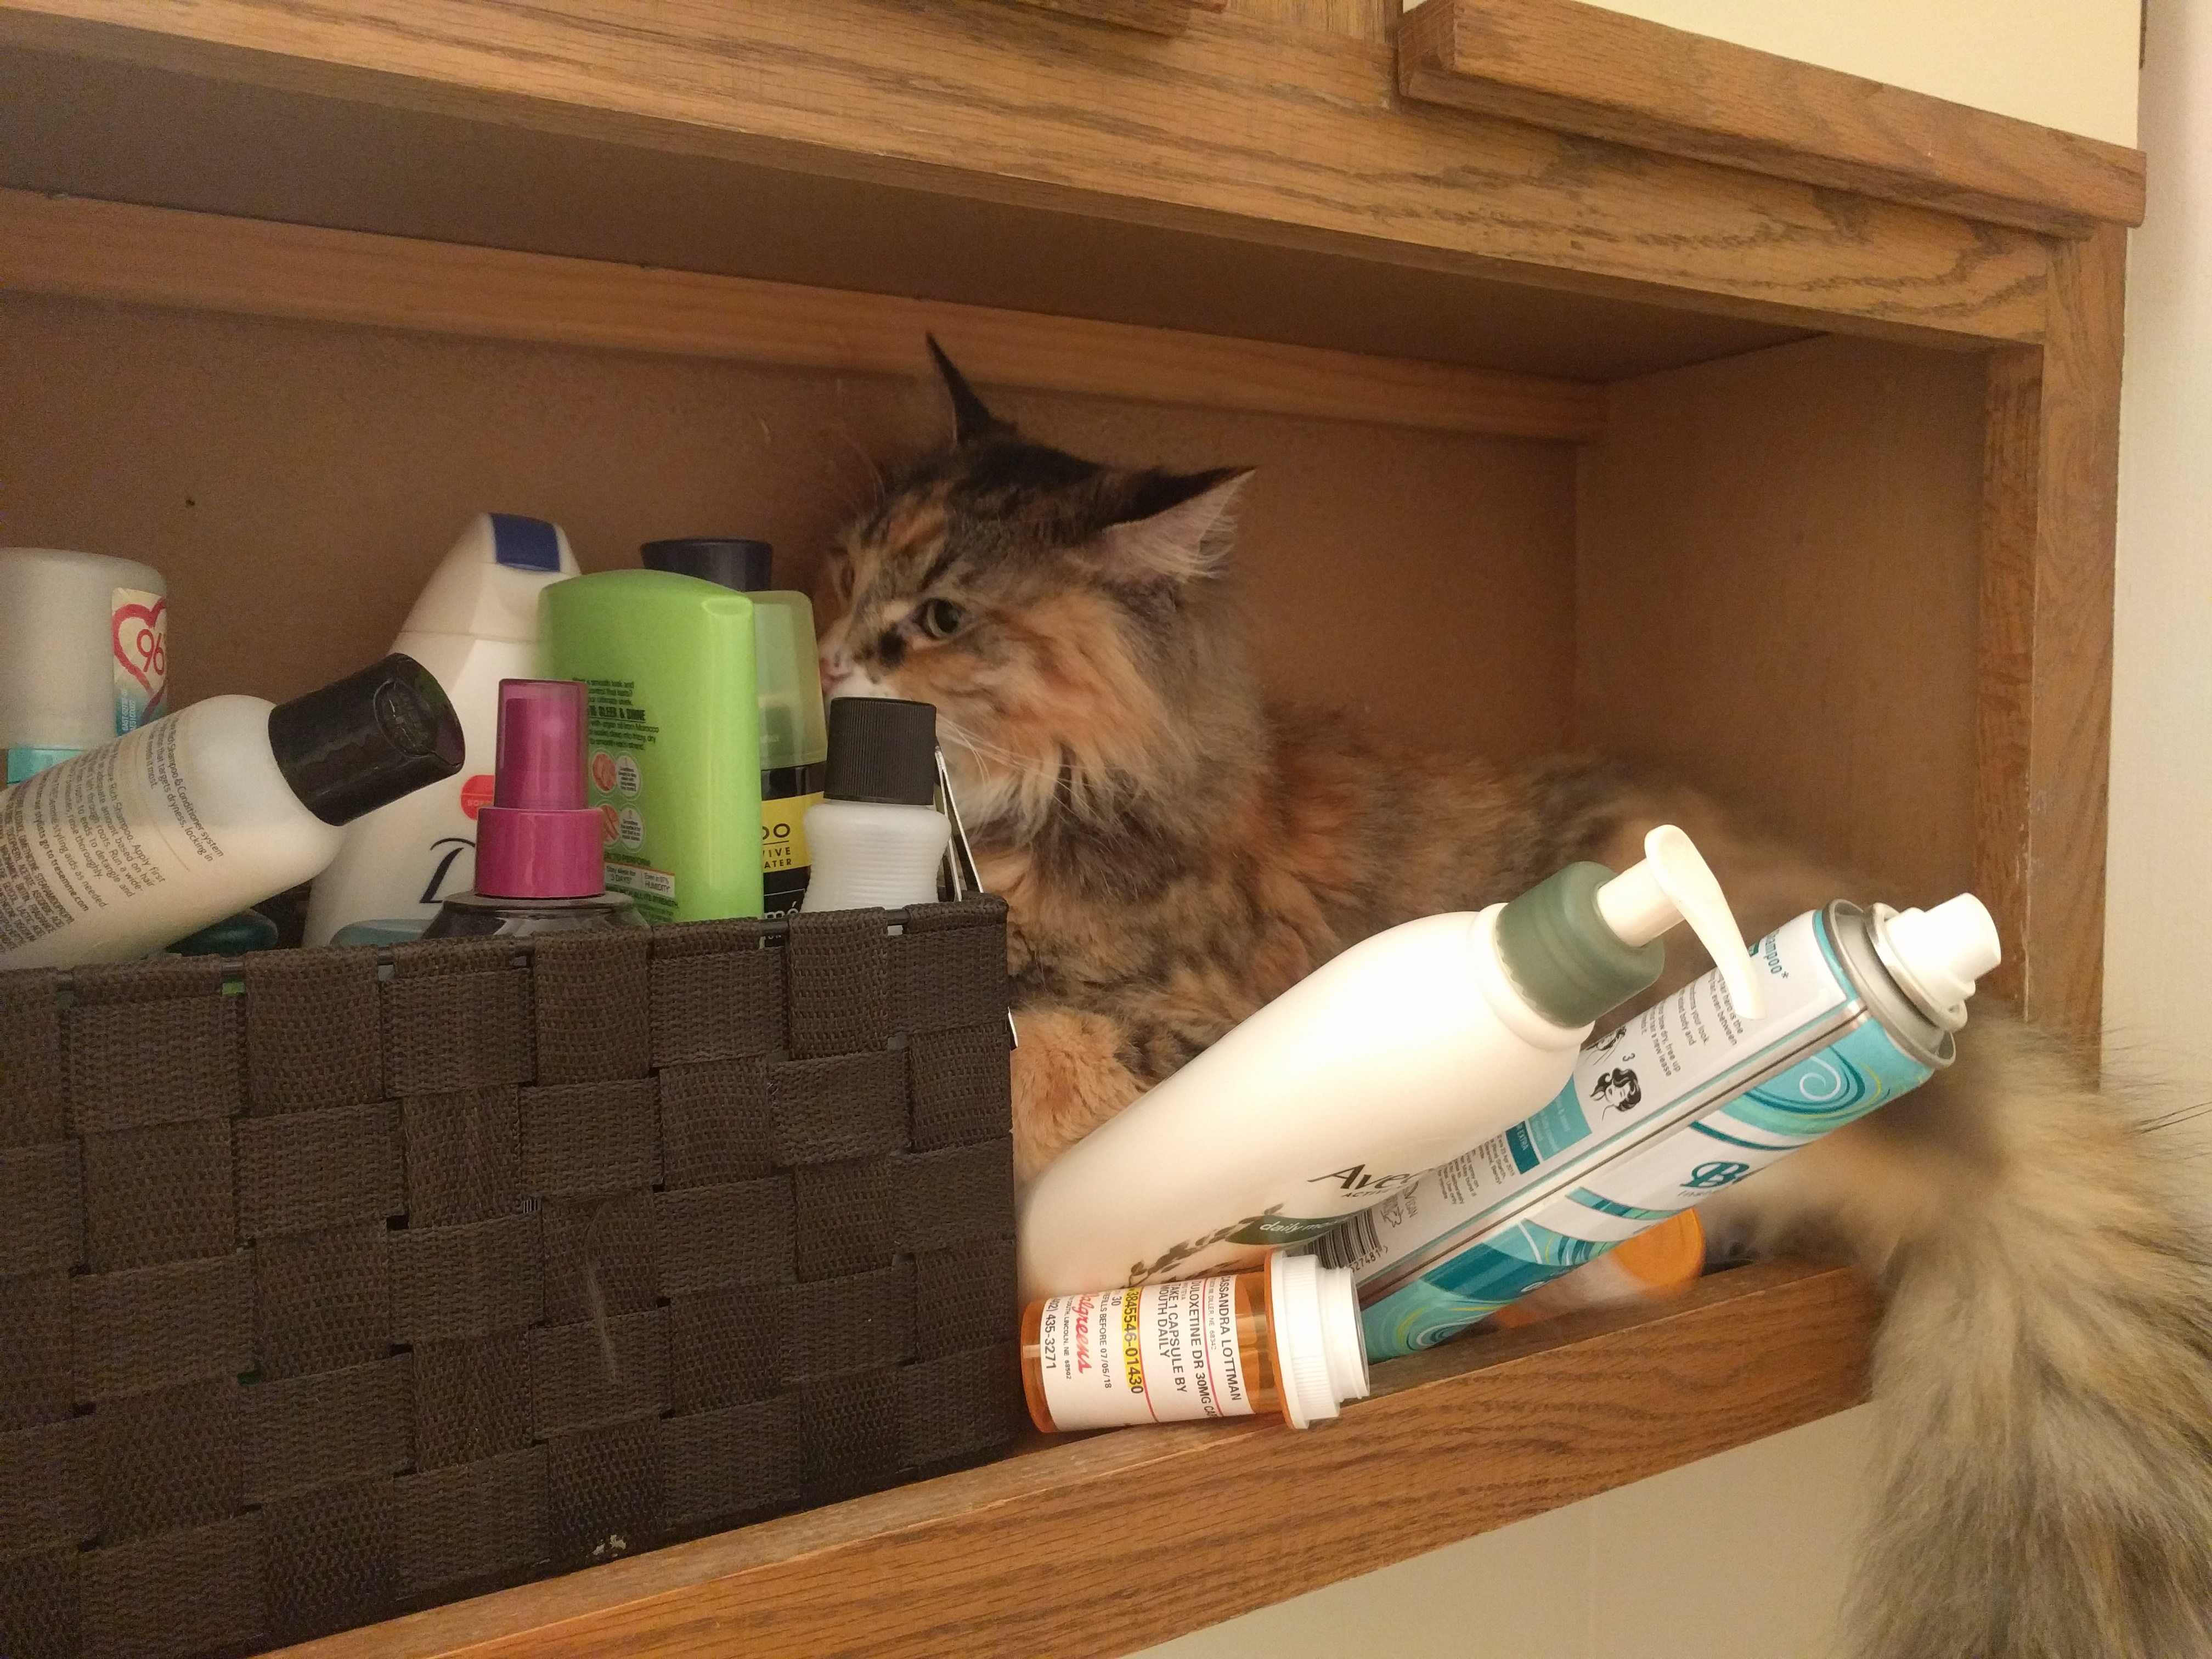 Tally sitting on a narrow shelf surrounded by beauty products that are about to fall off the shelf